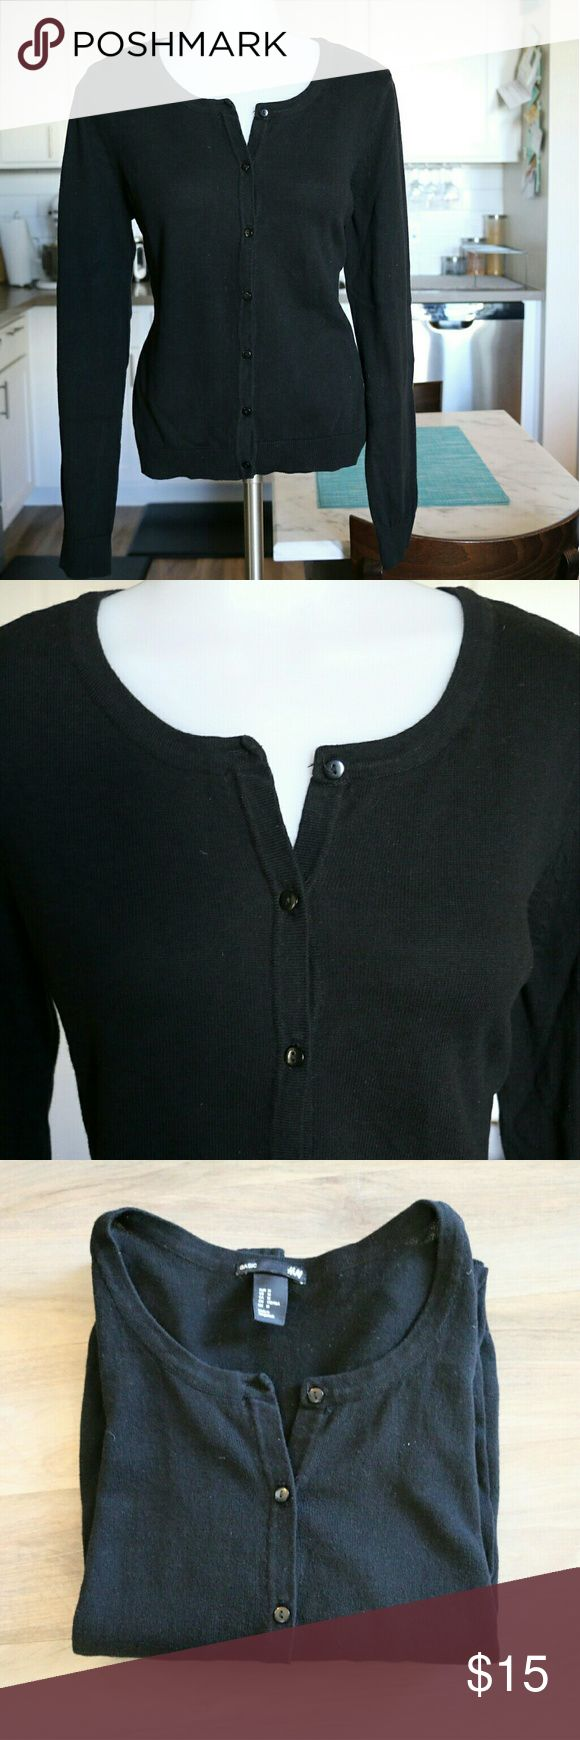 Basic Black Cardigan A black cardigan is the staple to every closet. Cute, comfy and reliable with any outfit. Fabric: 100% Cotton  Condition: New without tags, never worn H&M Sweaters Cardigans